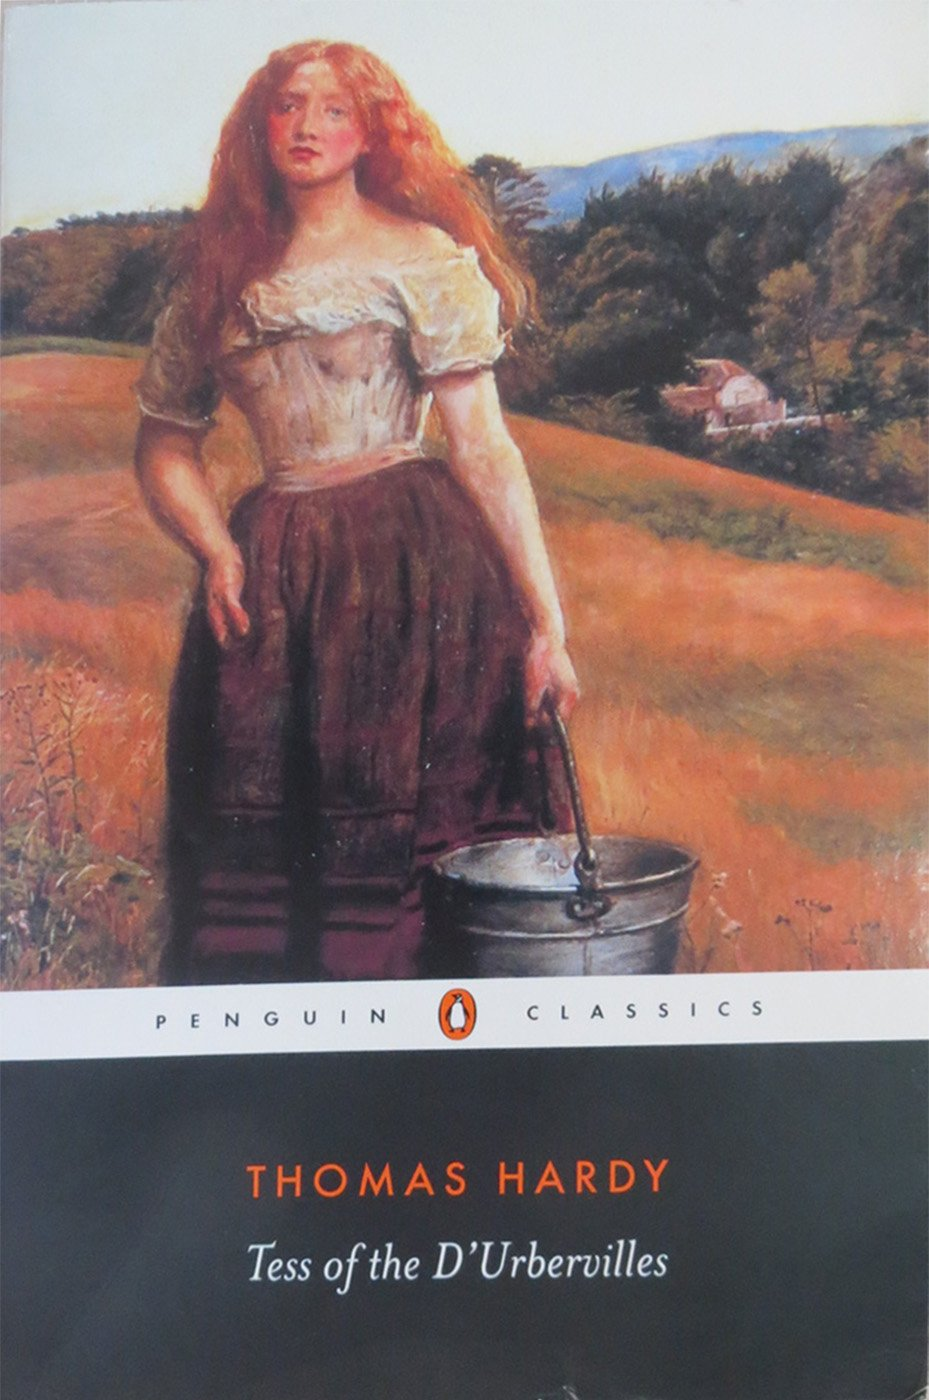 tess of the d urbervilles penguin classics thomas hardy tim tess of the d urbervilles penguin classics thomas hardy tim dolin margaret randolph higonnet 9780141439594 com books